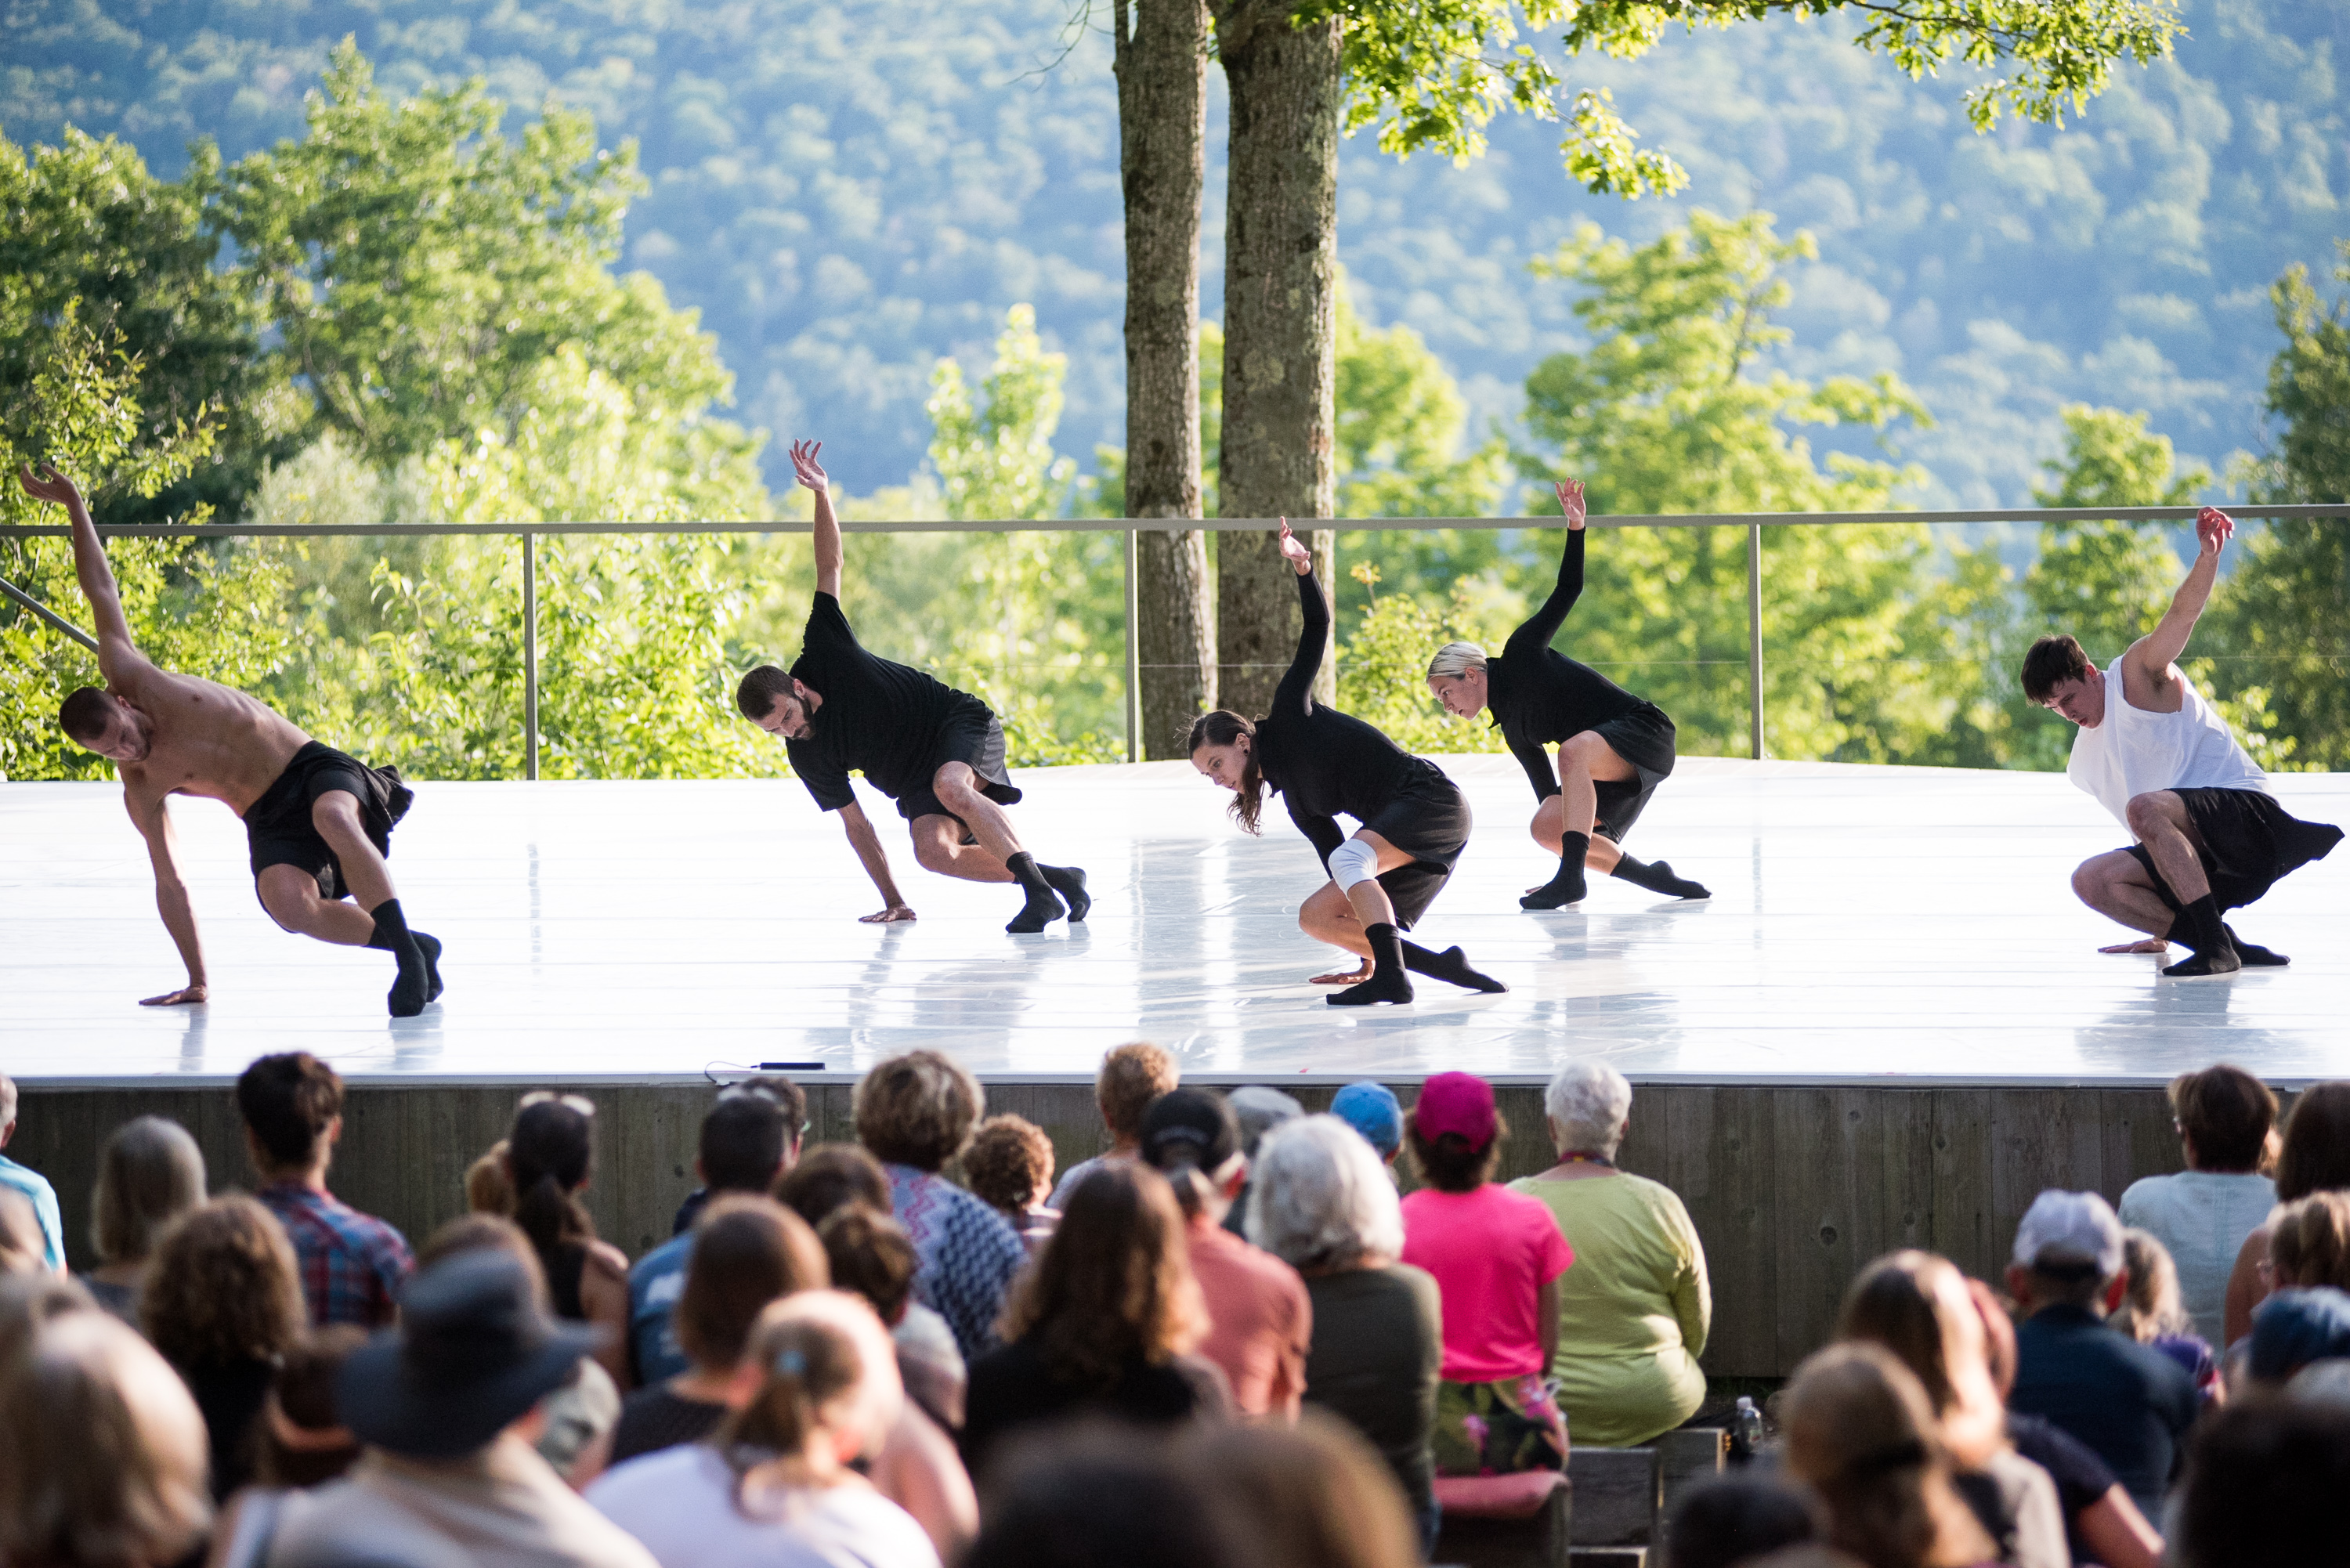 PHOTO Cherlynn Tsushi courtesy of Jacob's Pillow